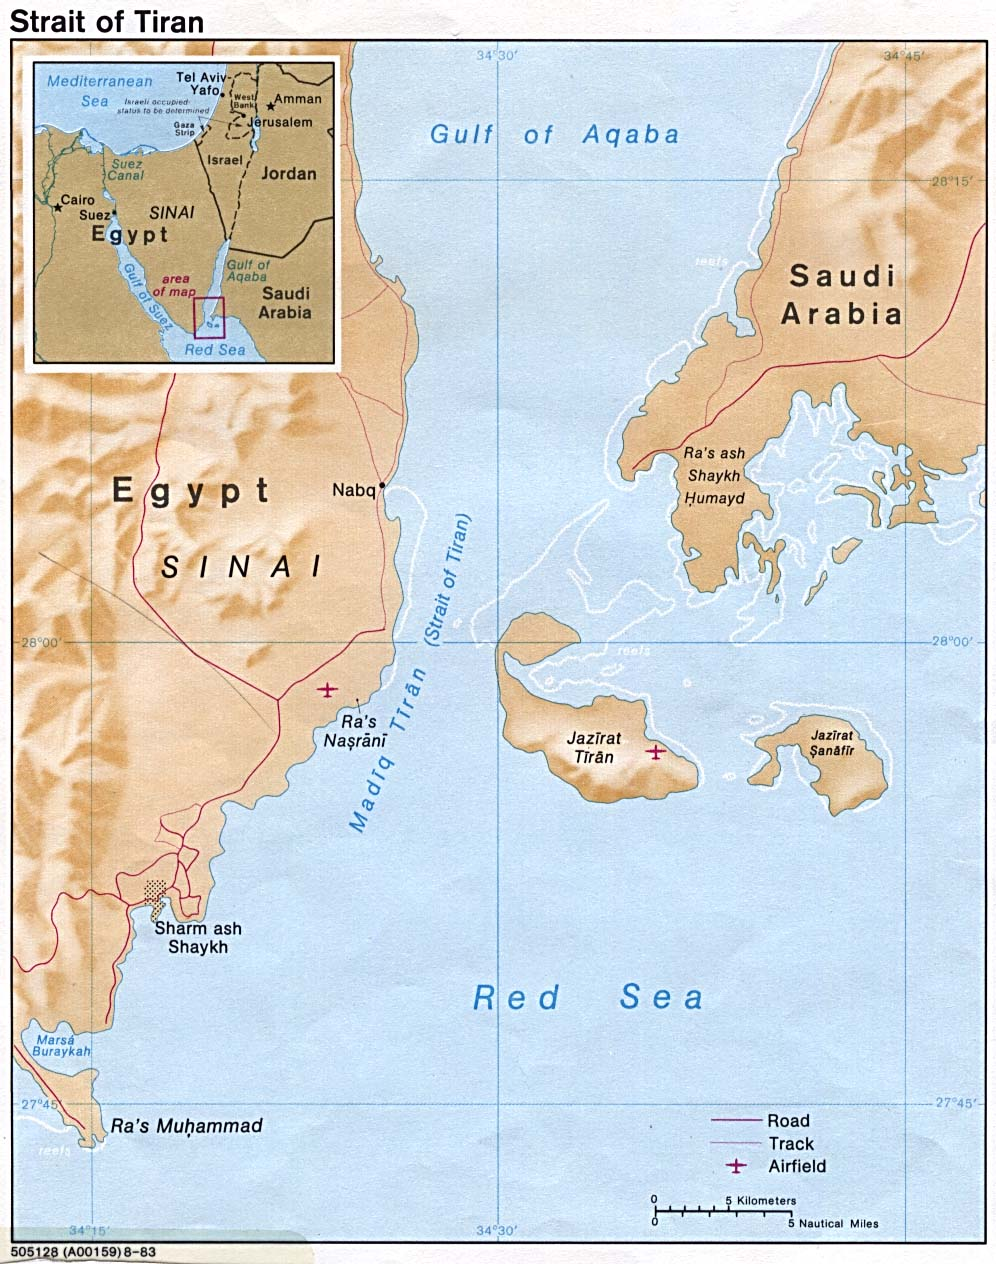 SaudiEgypt Causeway Wikipedia - Map of egypt red sea area